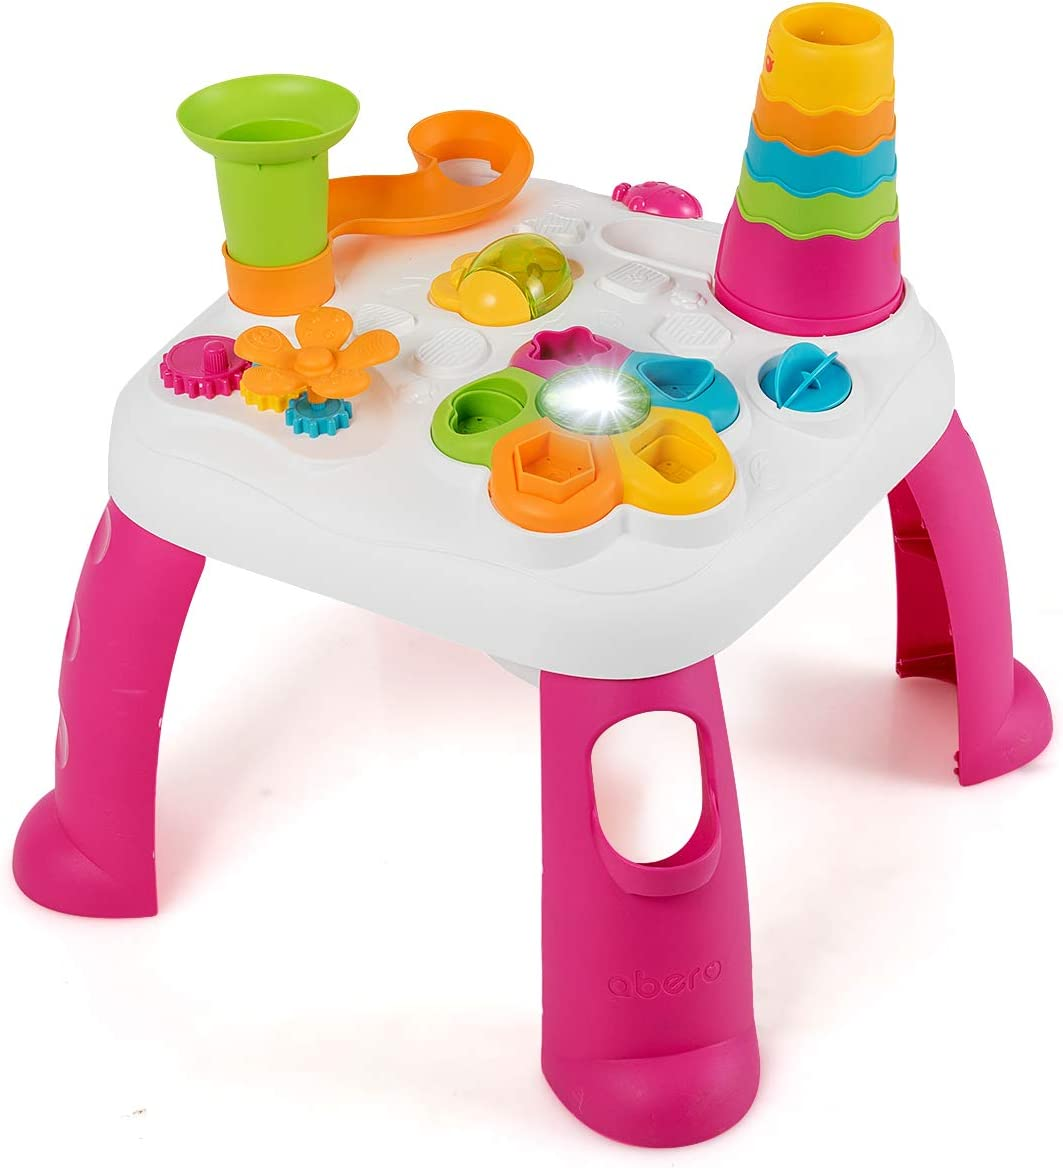 Baby Joy Toddler Learning Table, 2 in 1 Sit to Stand Early Education Toy, Convertible Activity Play Game Musical Table w/ Sound, Light, Music Functions, Kids Toddler Birthday Gift (Pink)